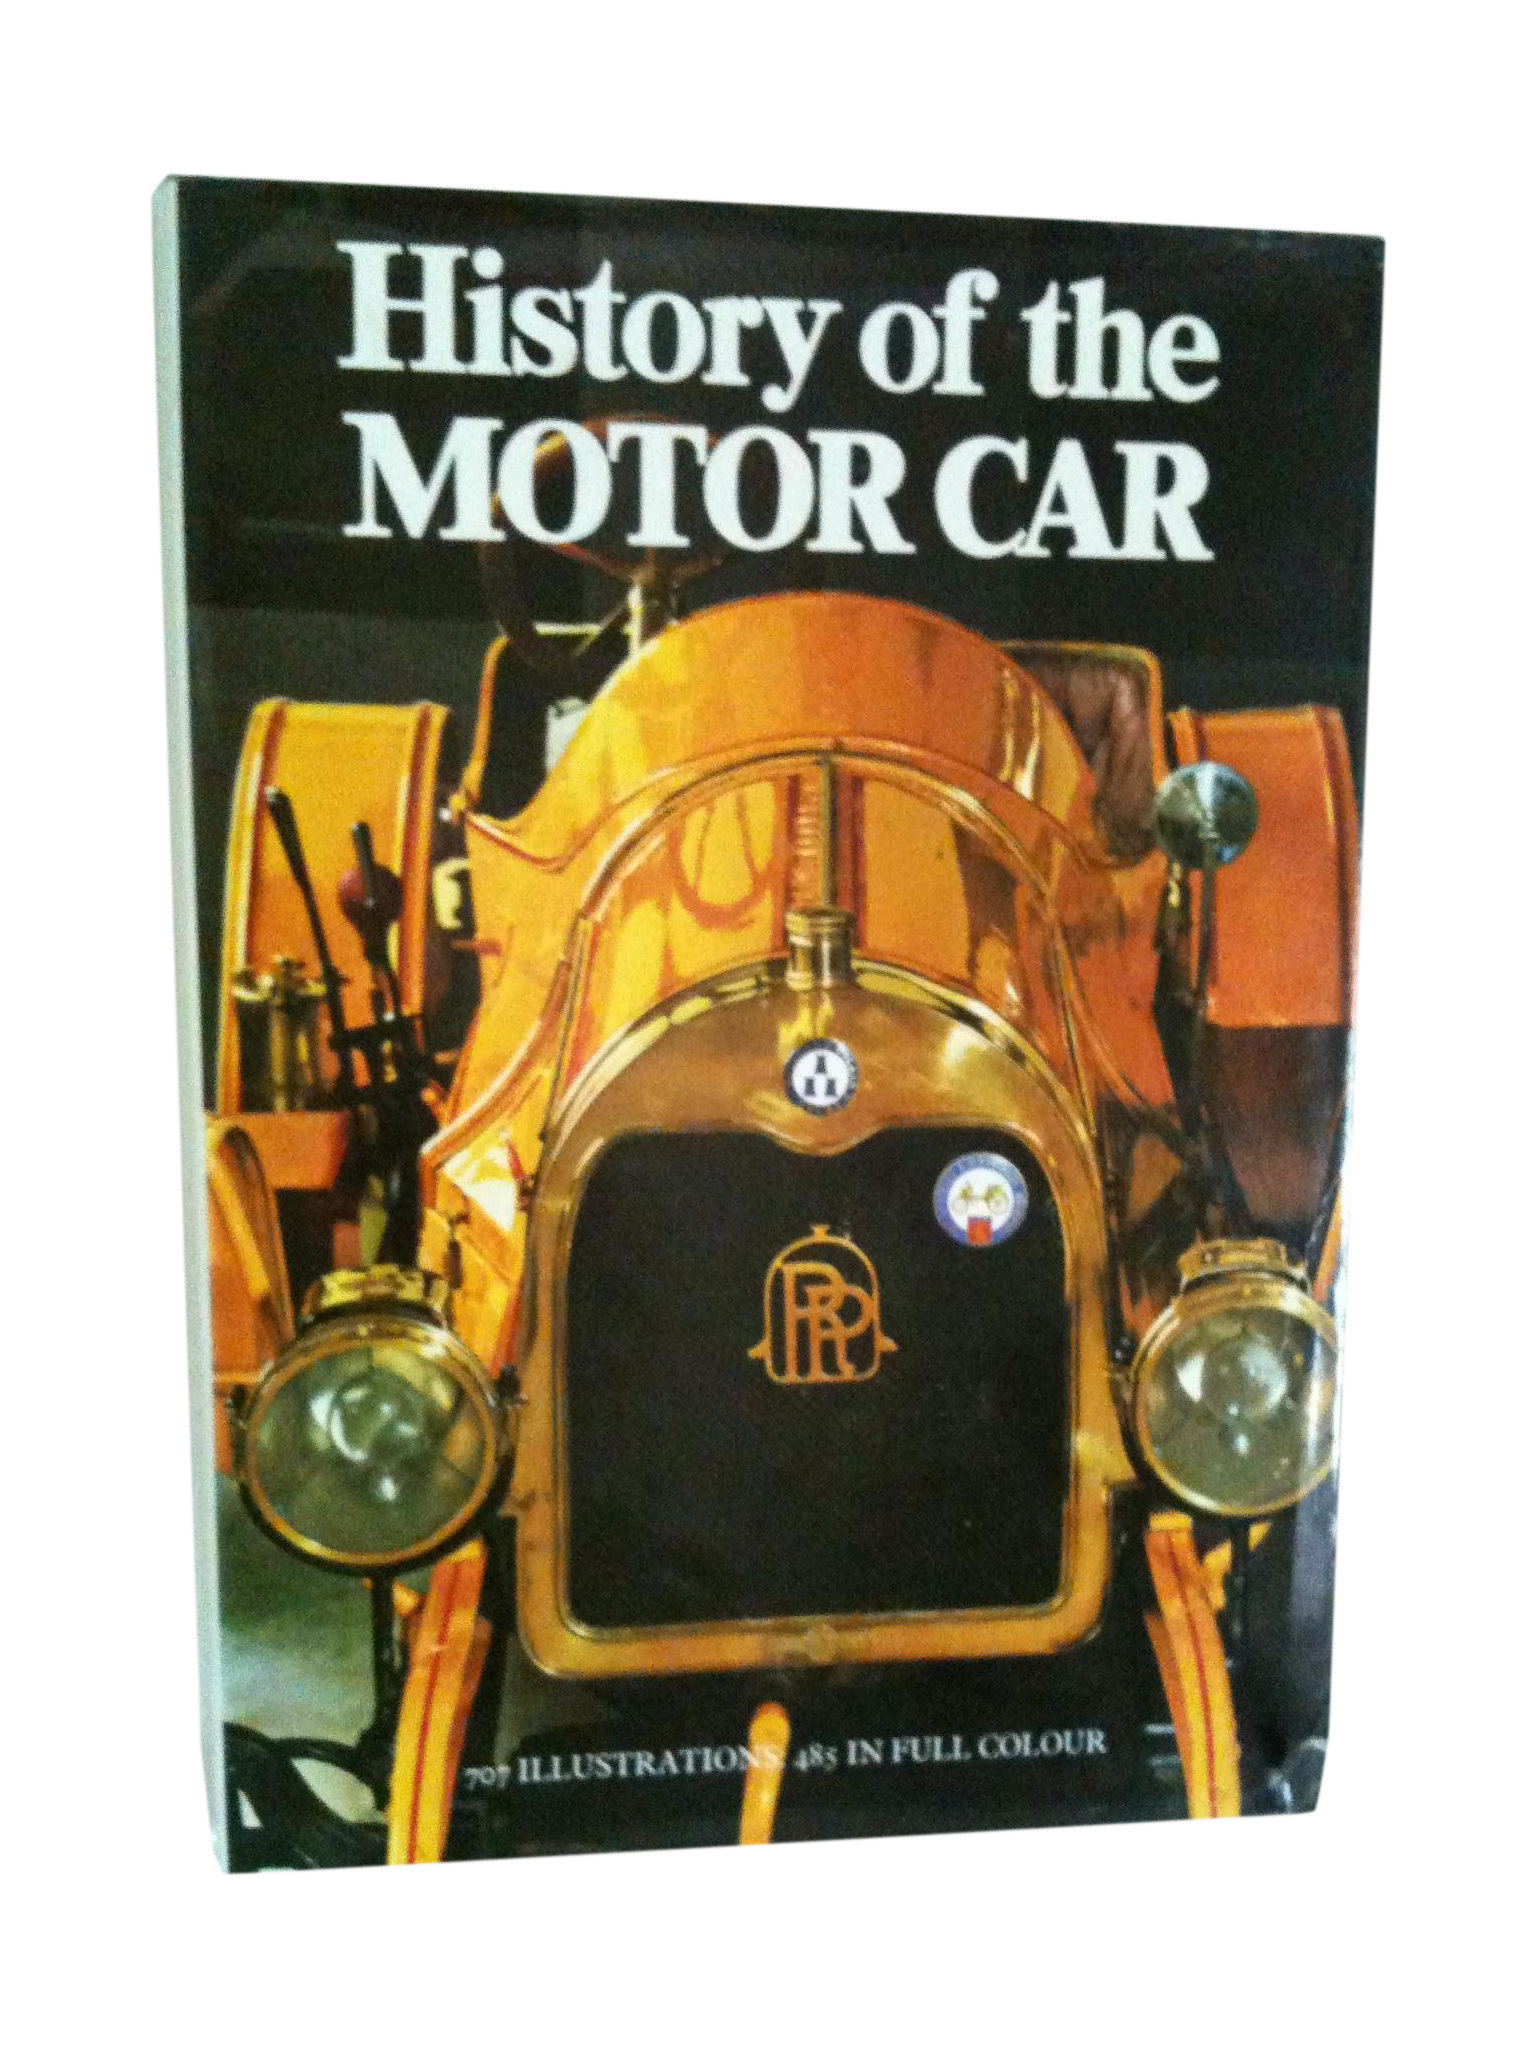 History of the Motor Car Vintage Book | Chairish